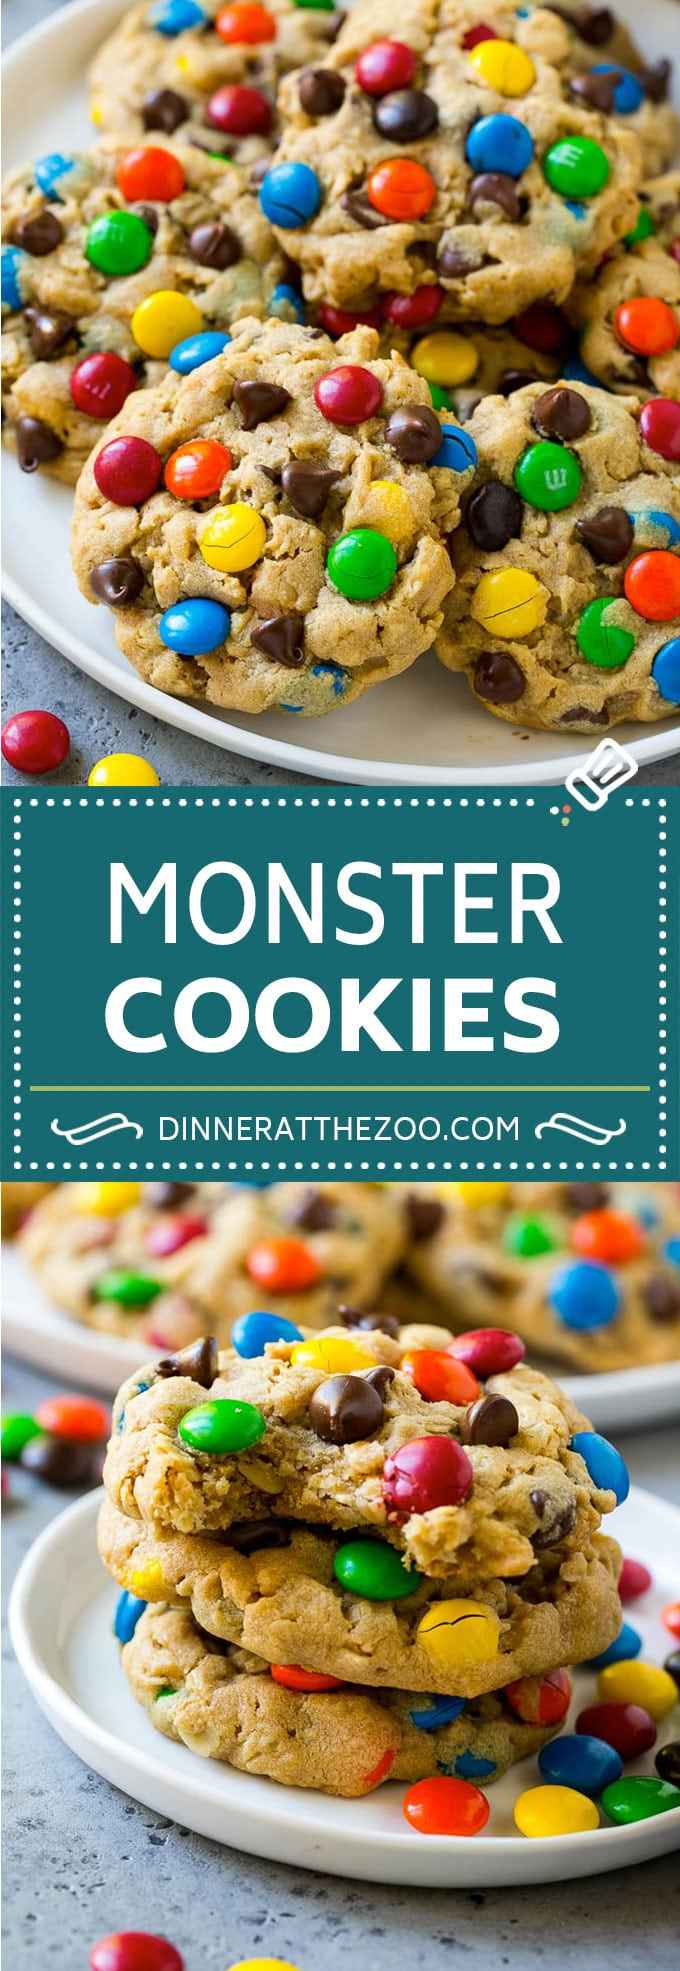 Monster Cookies Recipe | Oatmeal Cookies | Peanut Butter Cookies | M&M's Cookies #baking #cookies #dessert #peanutbutter #chocolate #dinneratthezoo